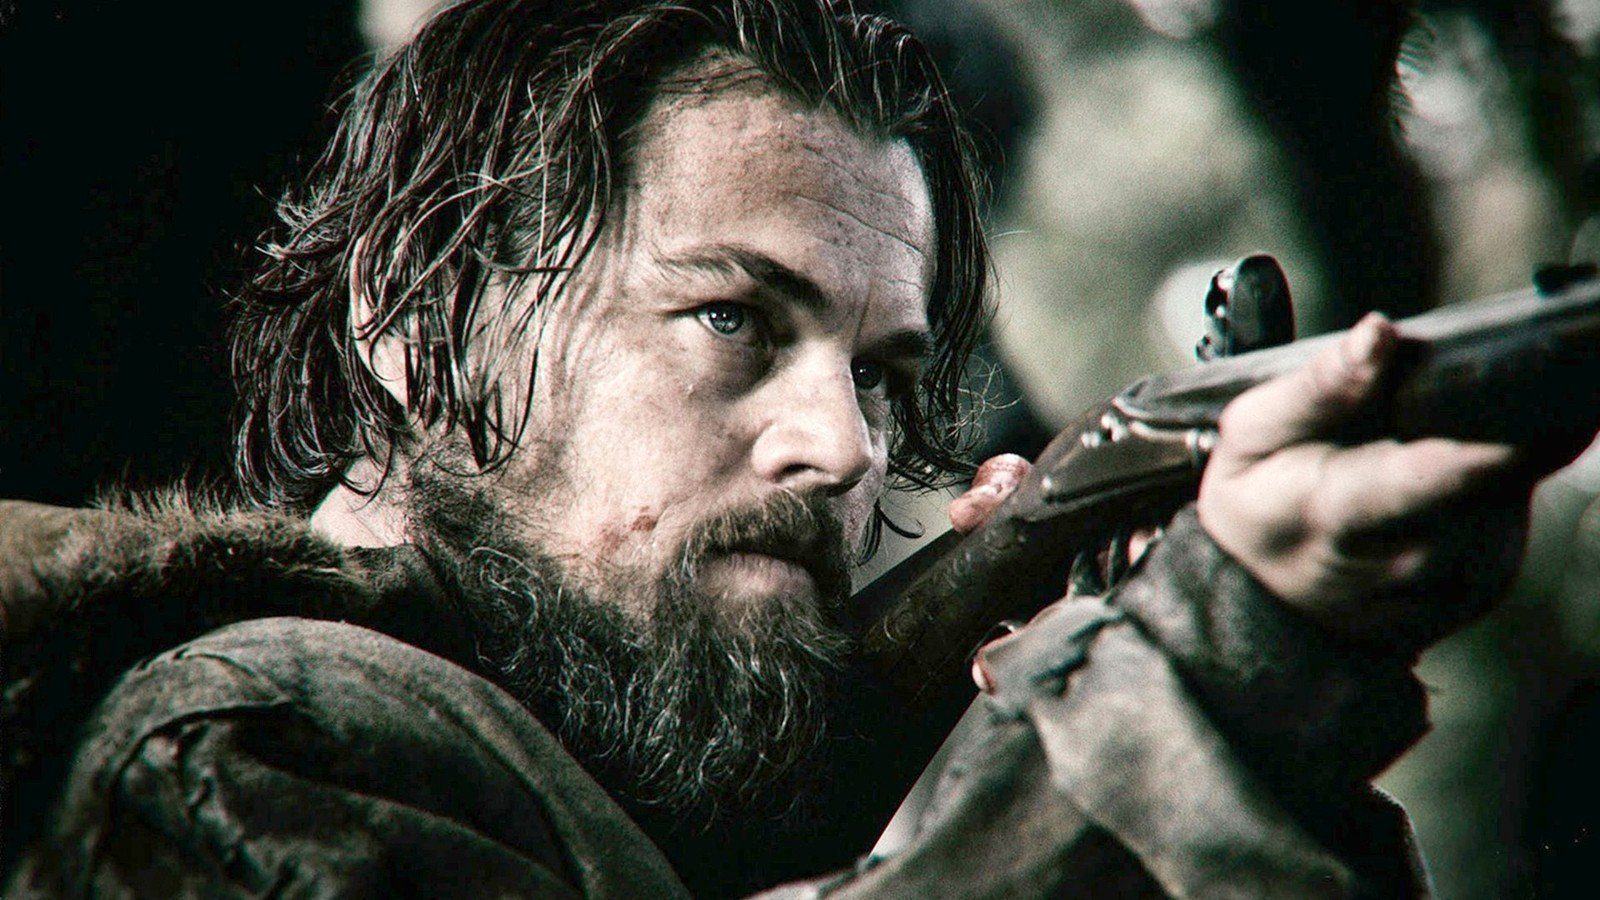 The revenant review leonardo dicaprio s out for vengeance in